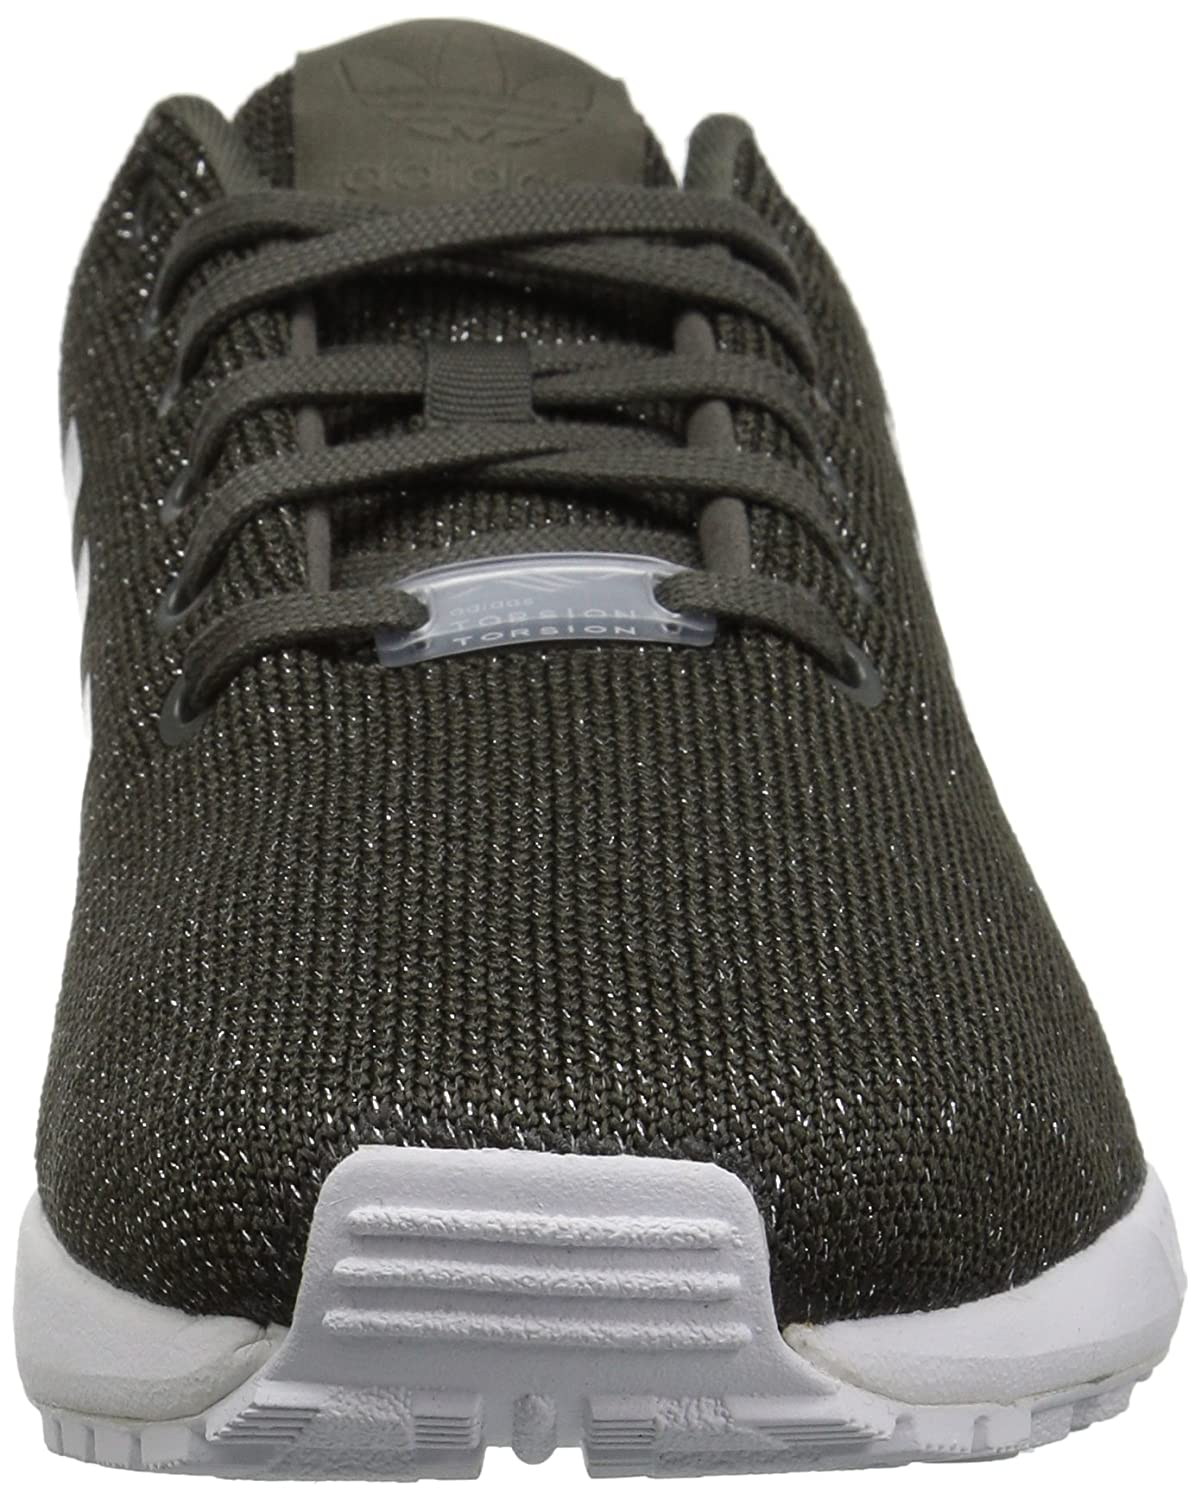 6502777b2 adidas Originals Women s ZX Flux W Running Shoe Sneaker Grey Utility Black Silver  Metallic